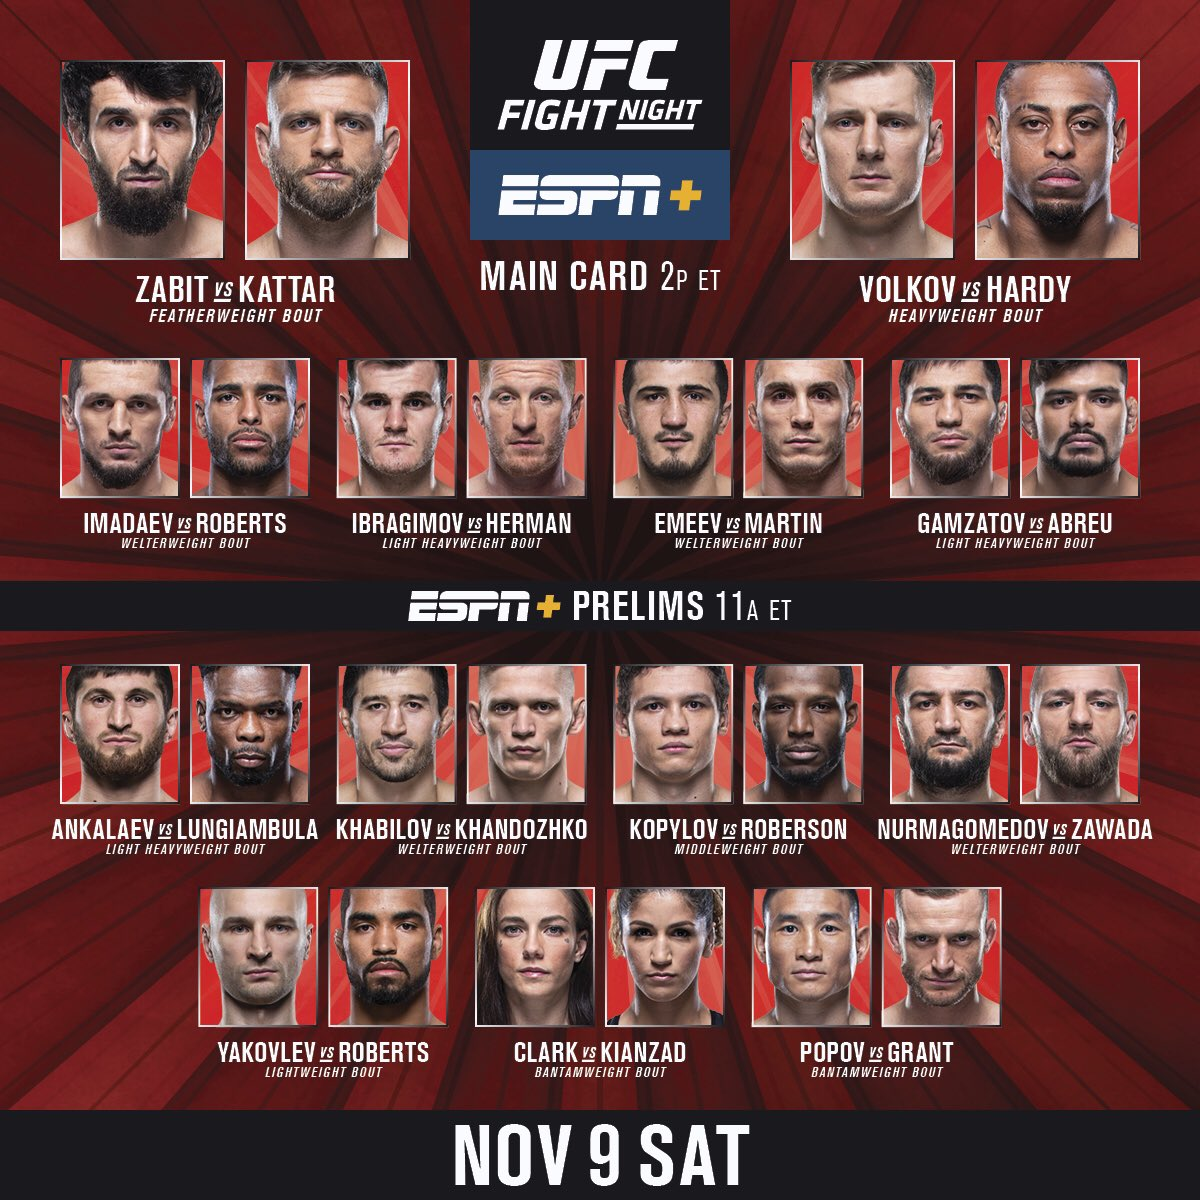 Live from Russia 🇷🇺   We get started in minutes on ESPN+. #UFCMoscow https://t.co/KdKnk88NQN